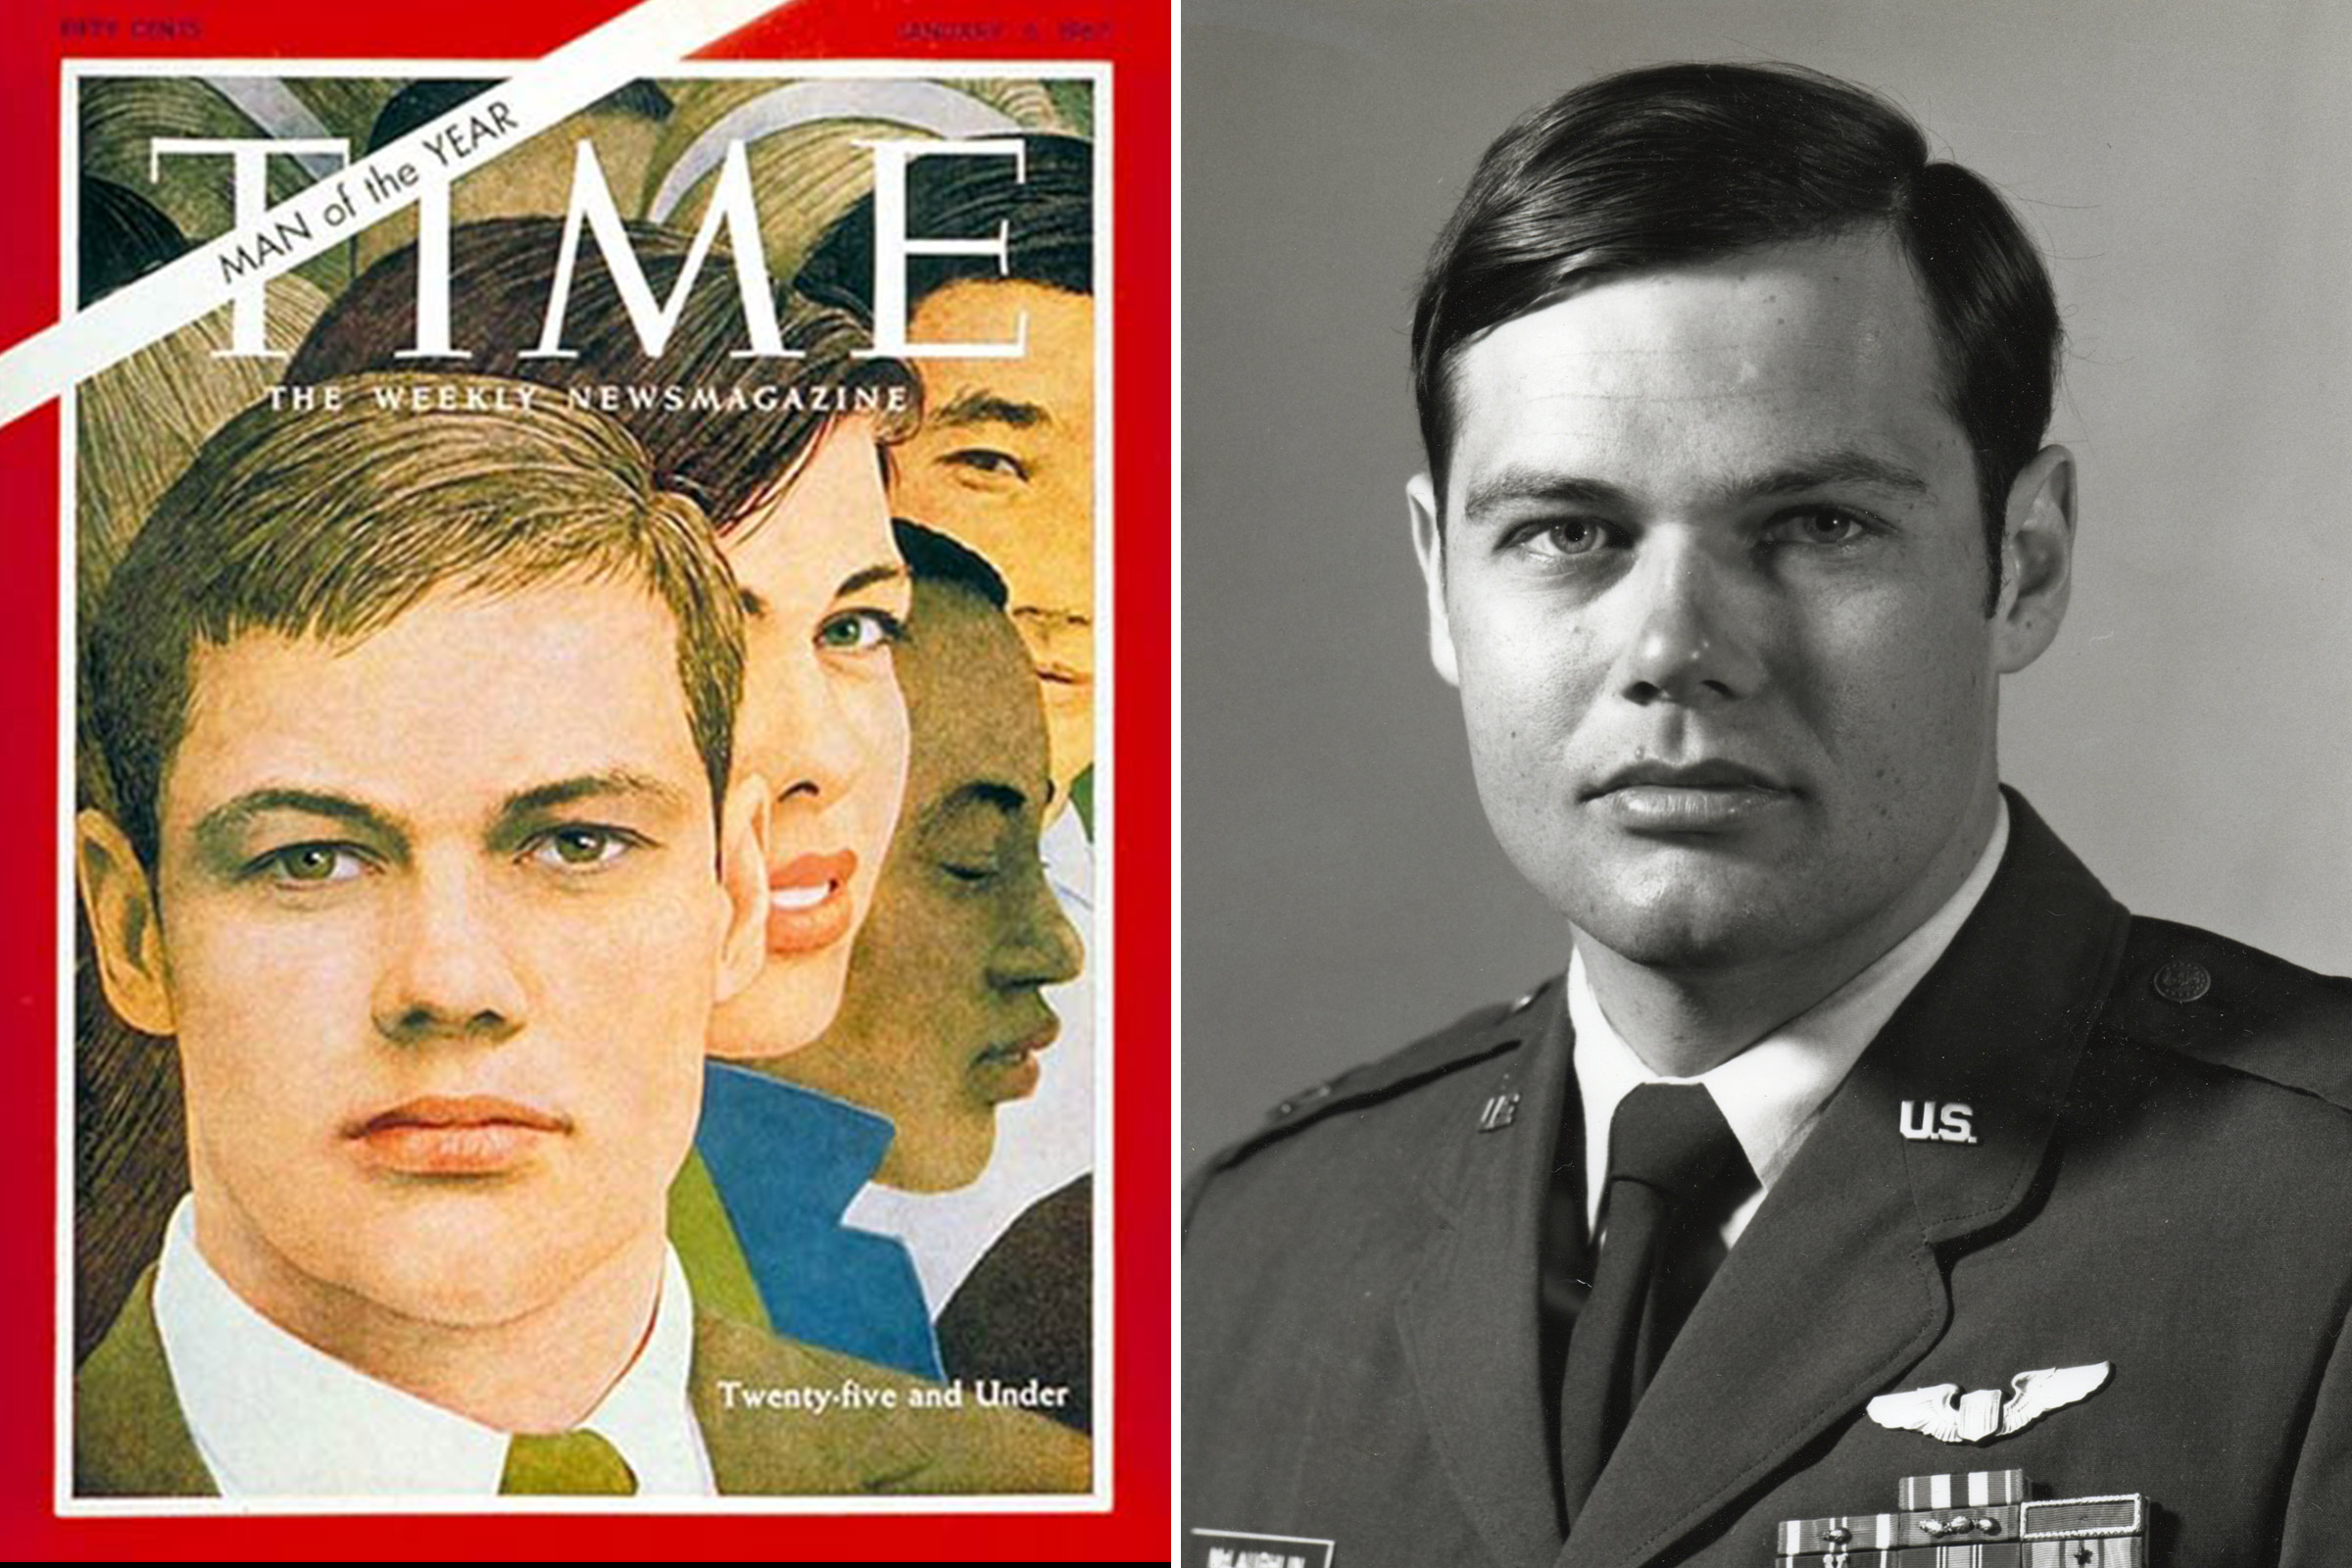 The Person of the Year 1966 cover image, at left, and Thomas McLaughlin in uniform.